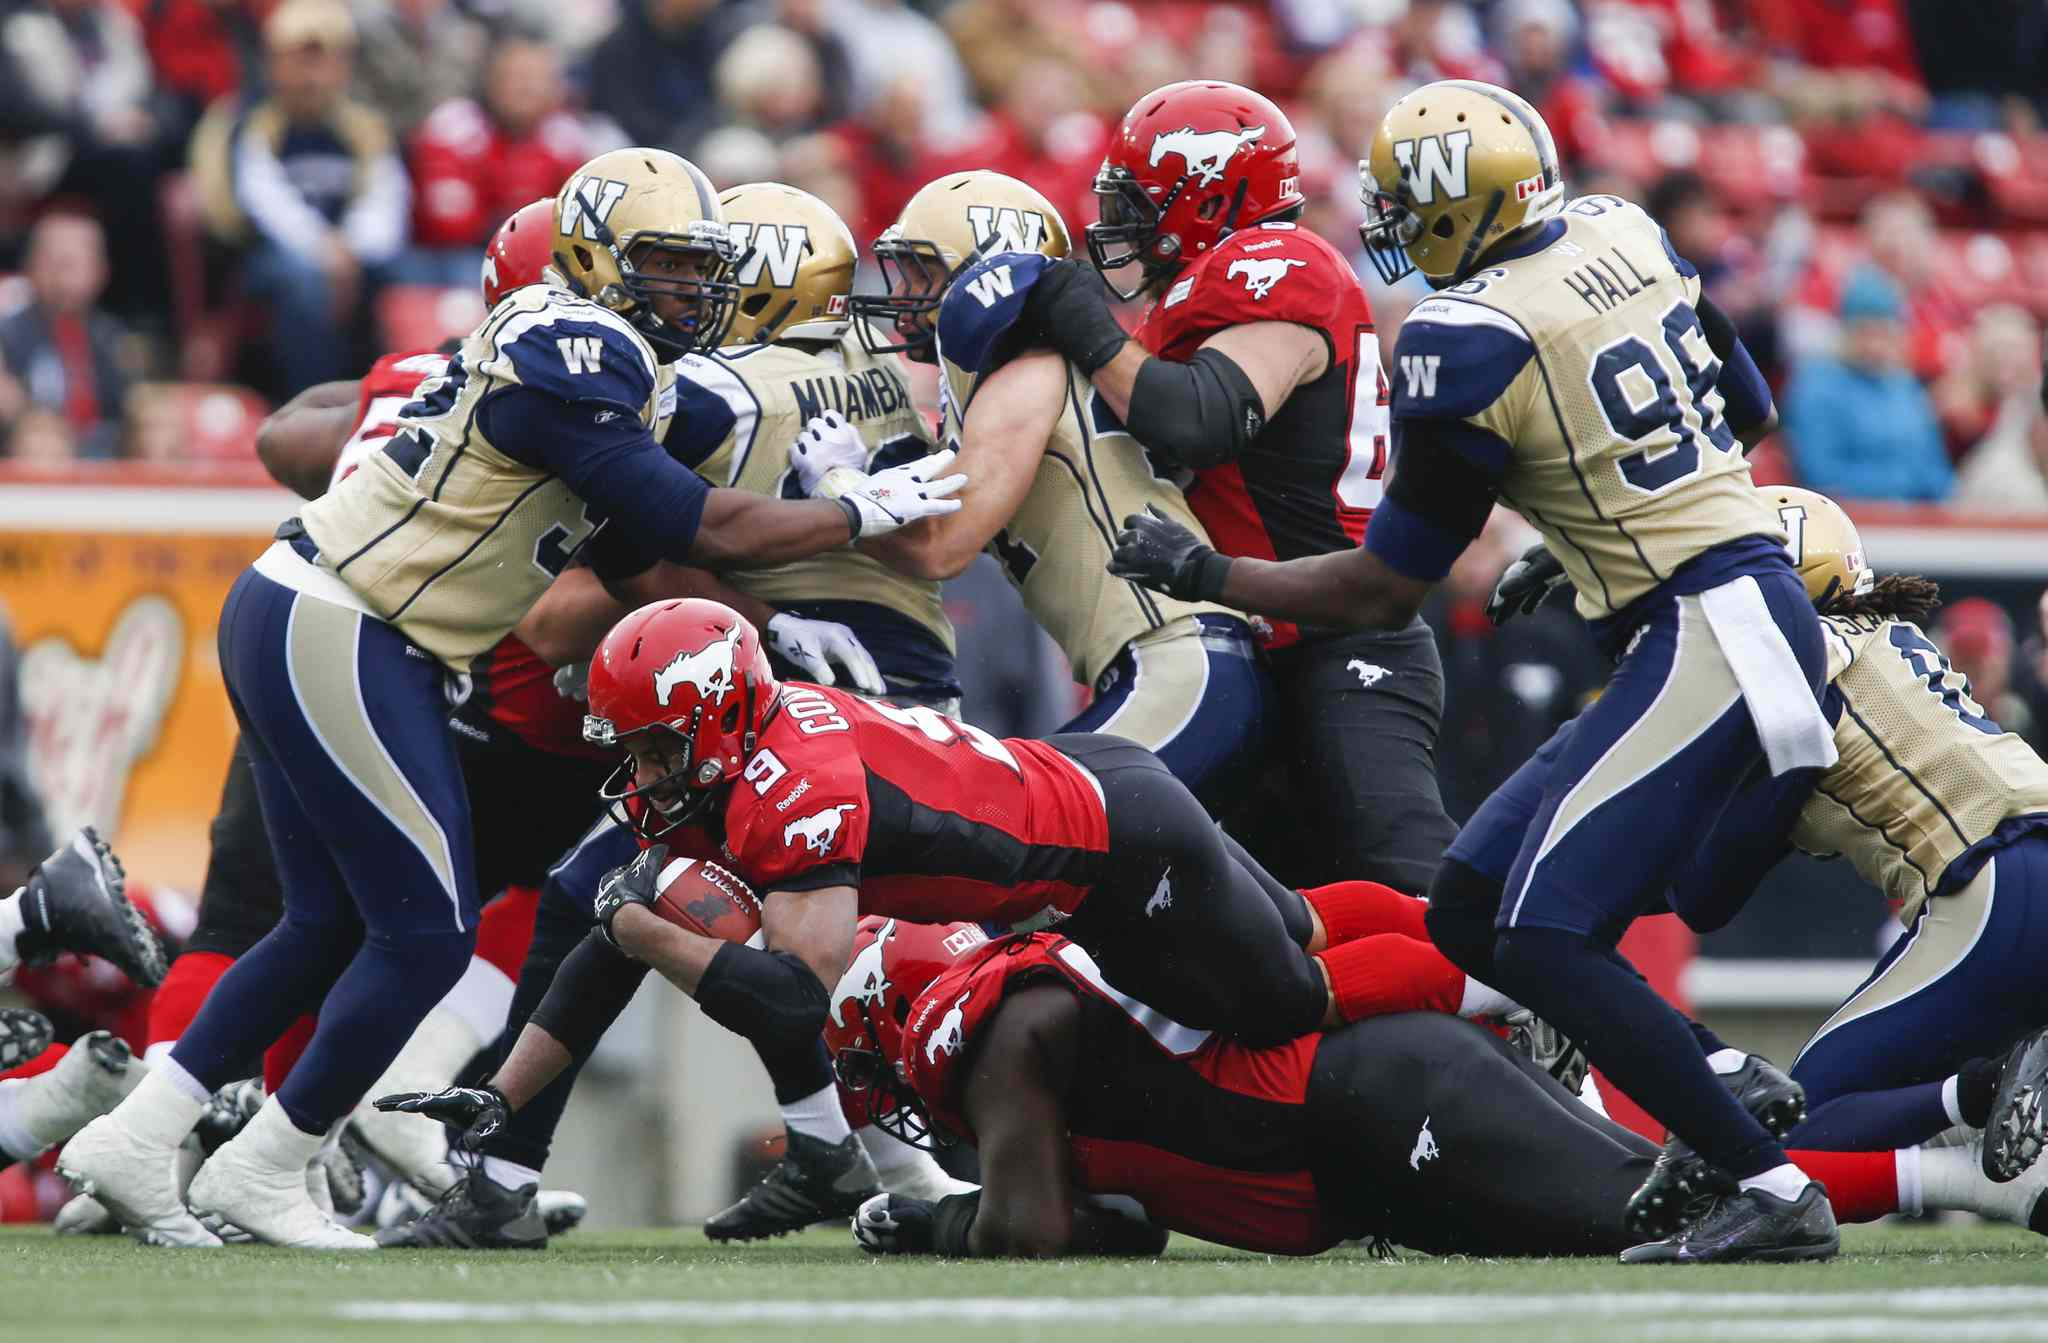 Winnipeg Blue Bombers' Bryant Turner Jr. (left) and Alex Hall (right) look on as Calgary Stampeders' Jon Cornish (centre) dives for more yards during the first half.